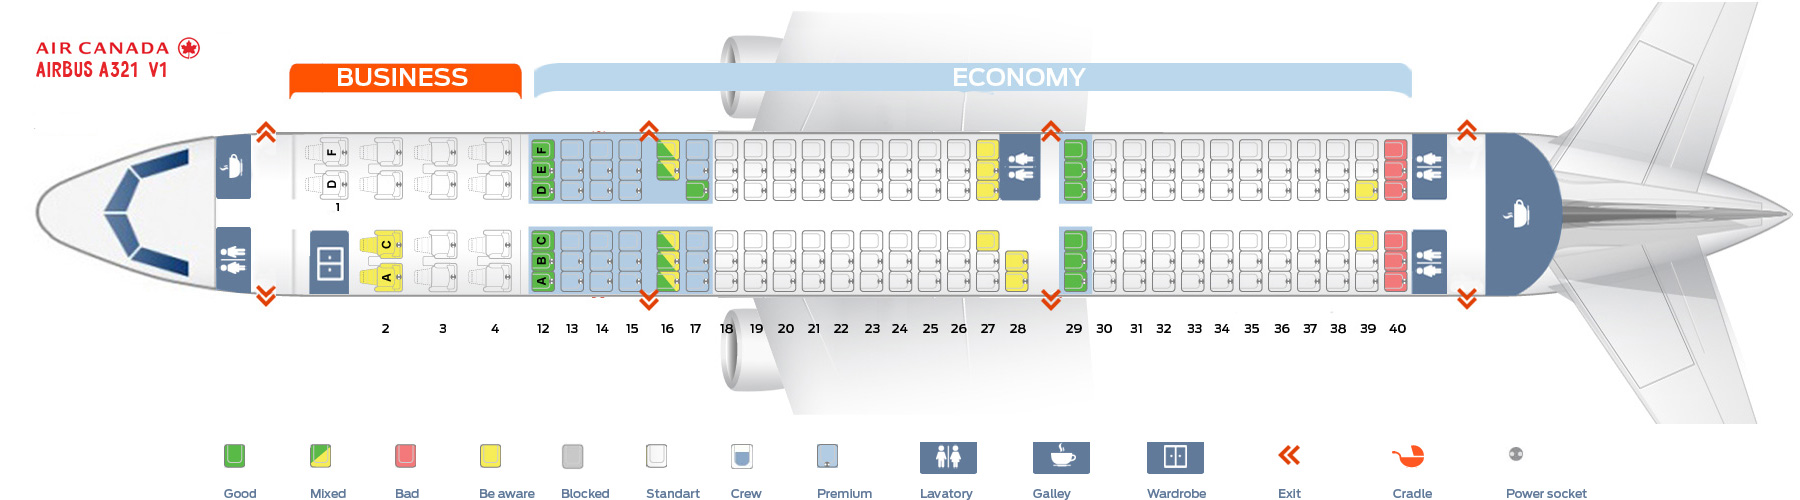 Seat_map_Air_Canada_Airbus_A321_v1